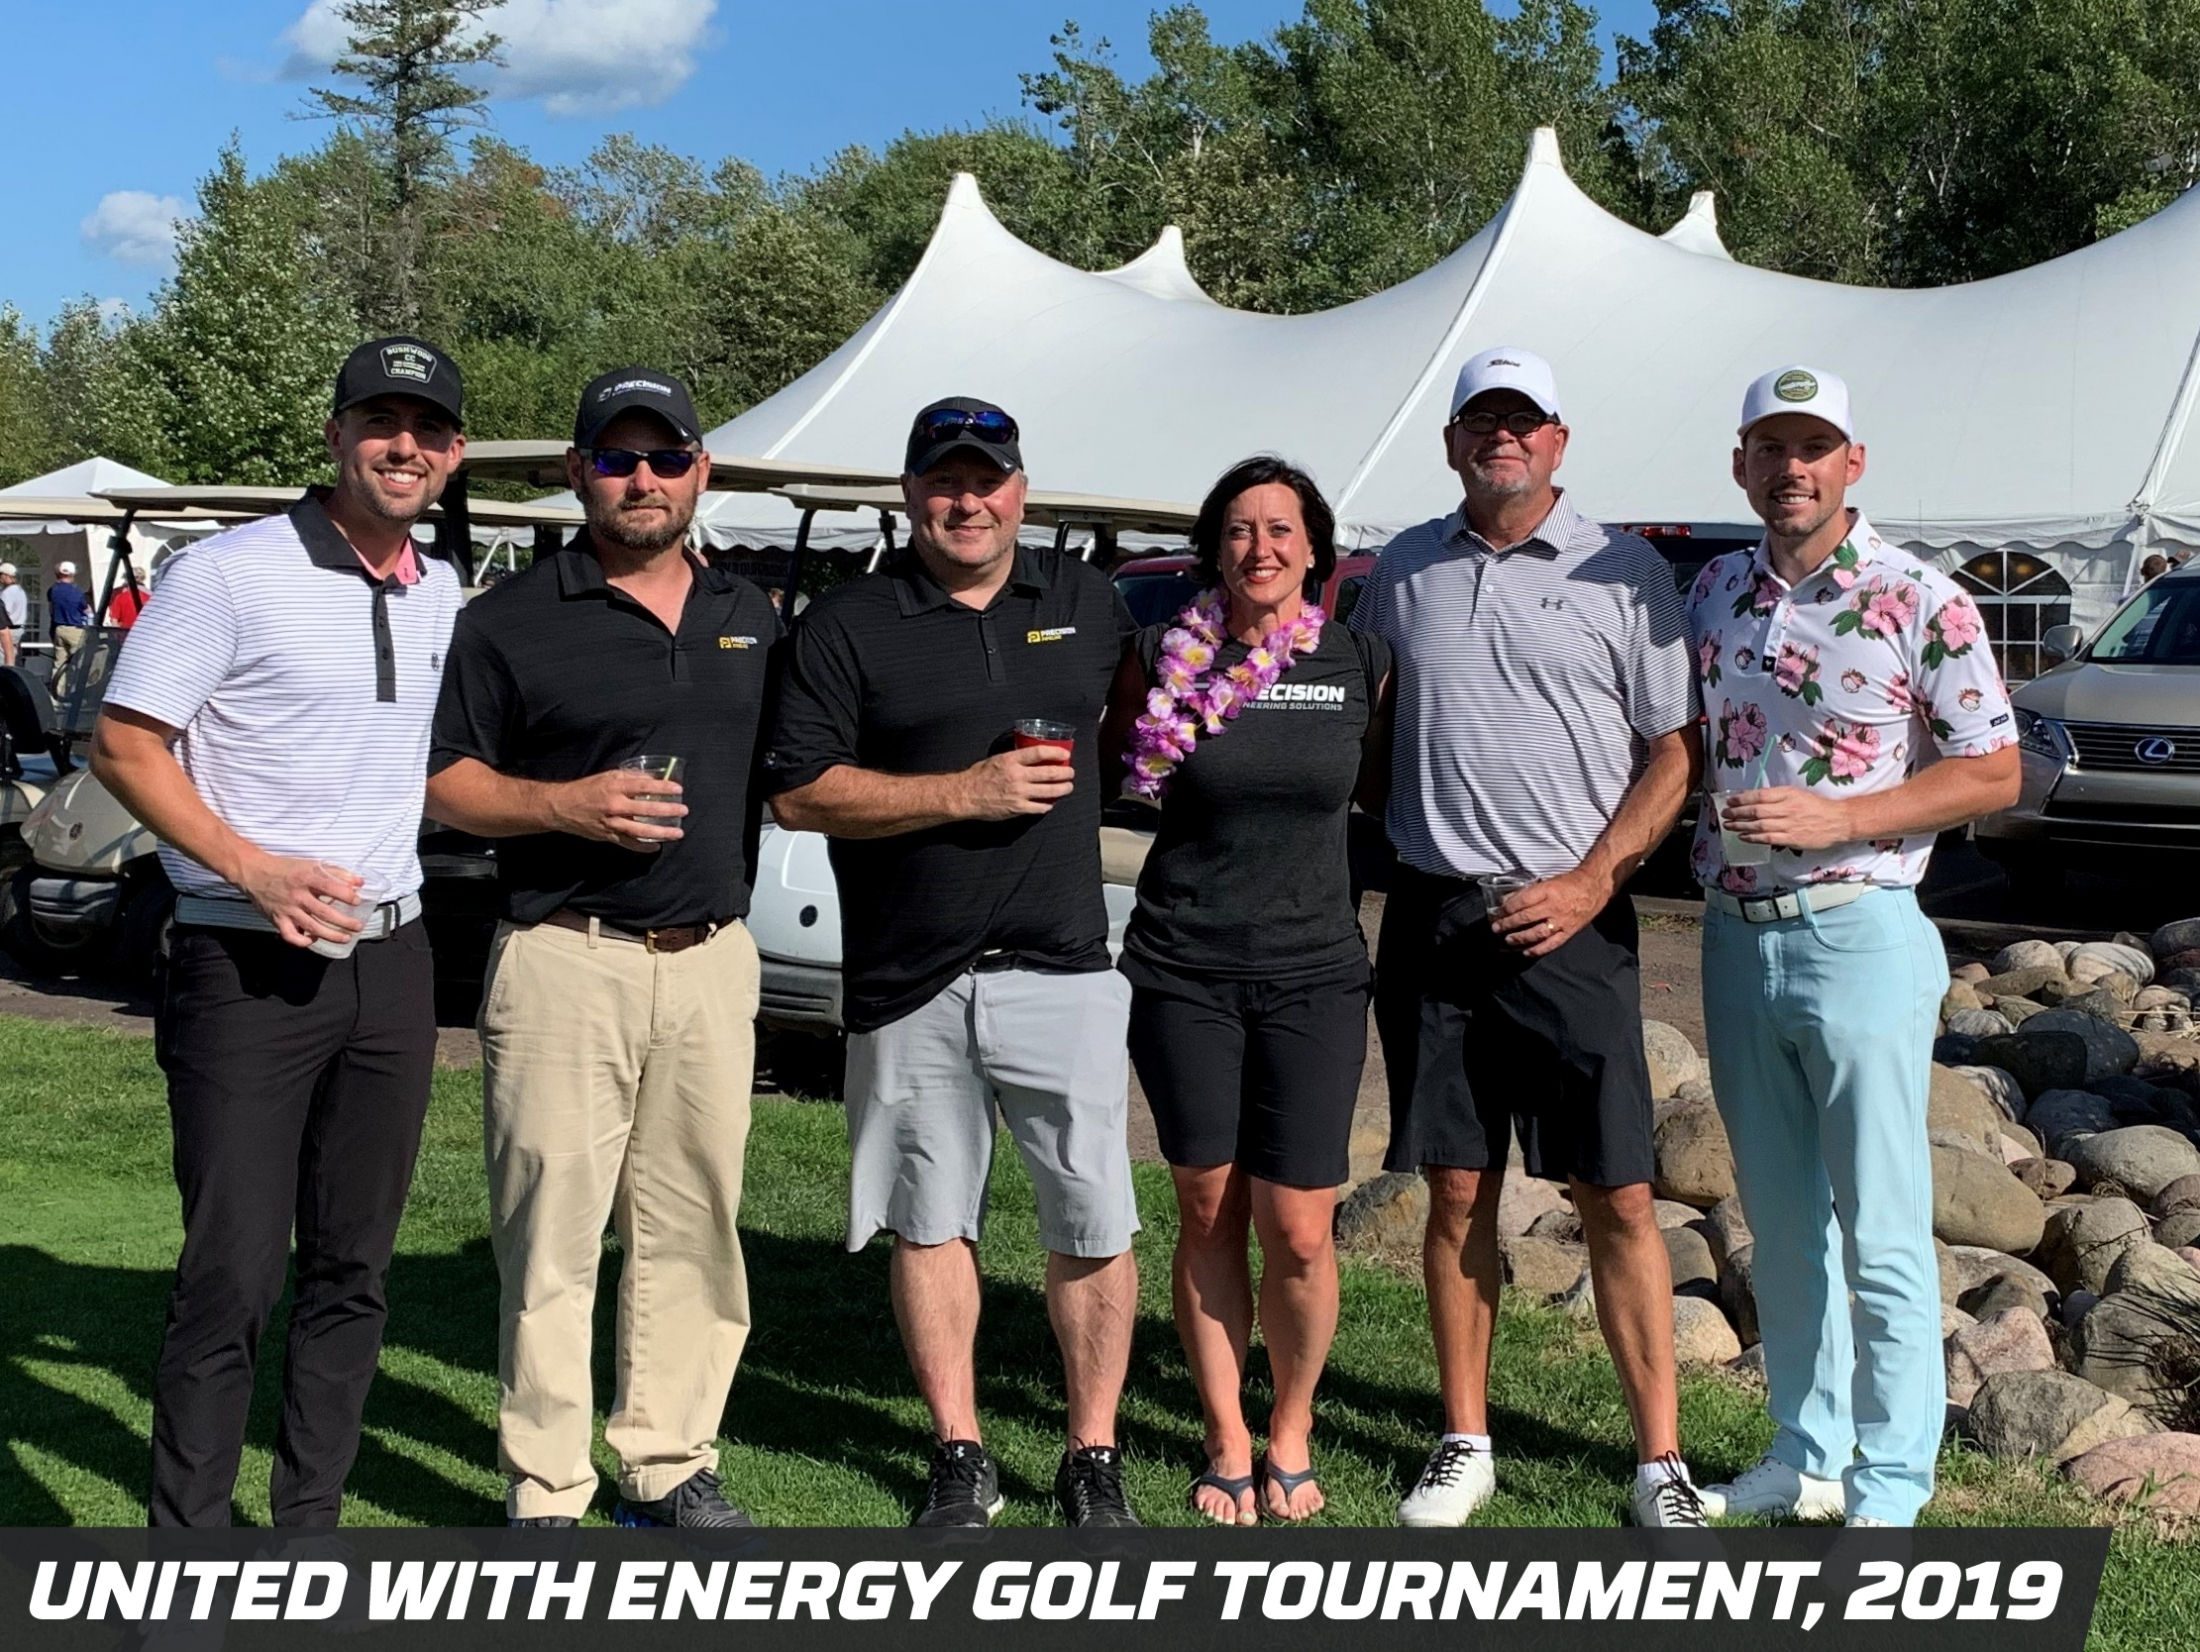 Precision Pipeline Community Involvement: United With Energy Golf Tournament 2019